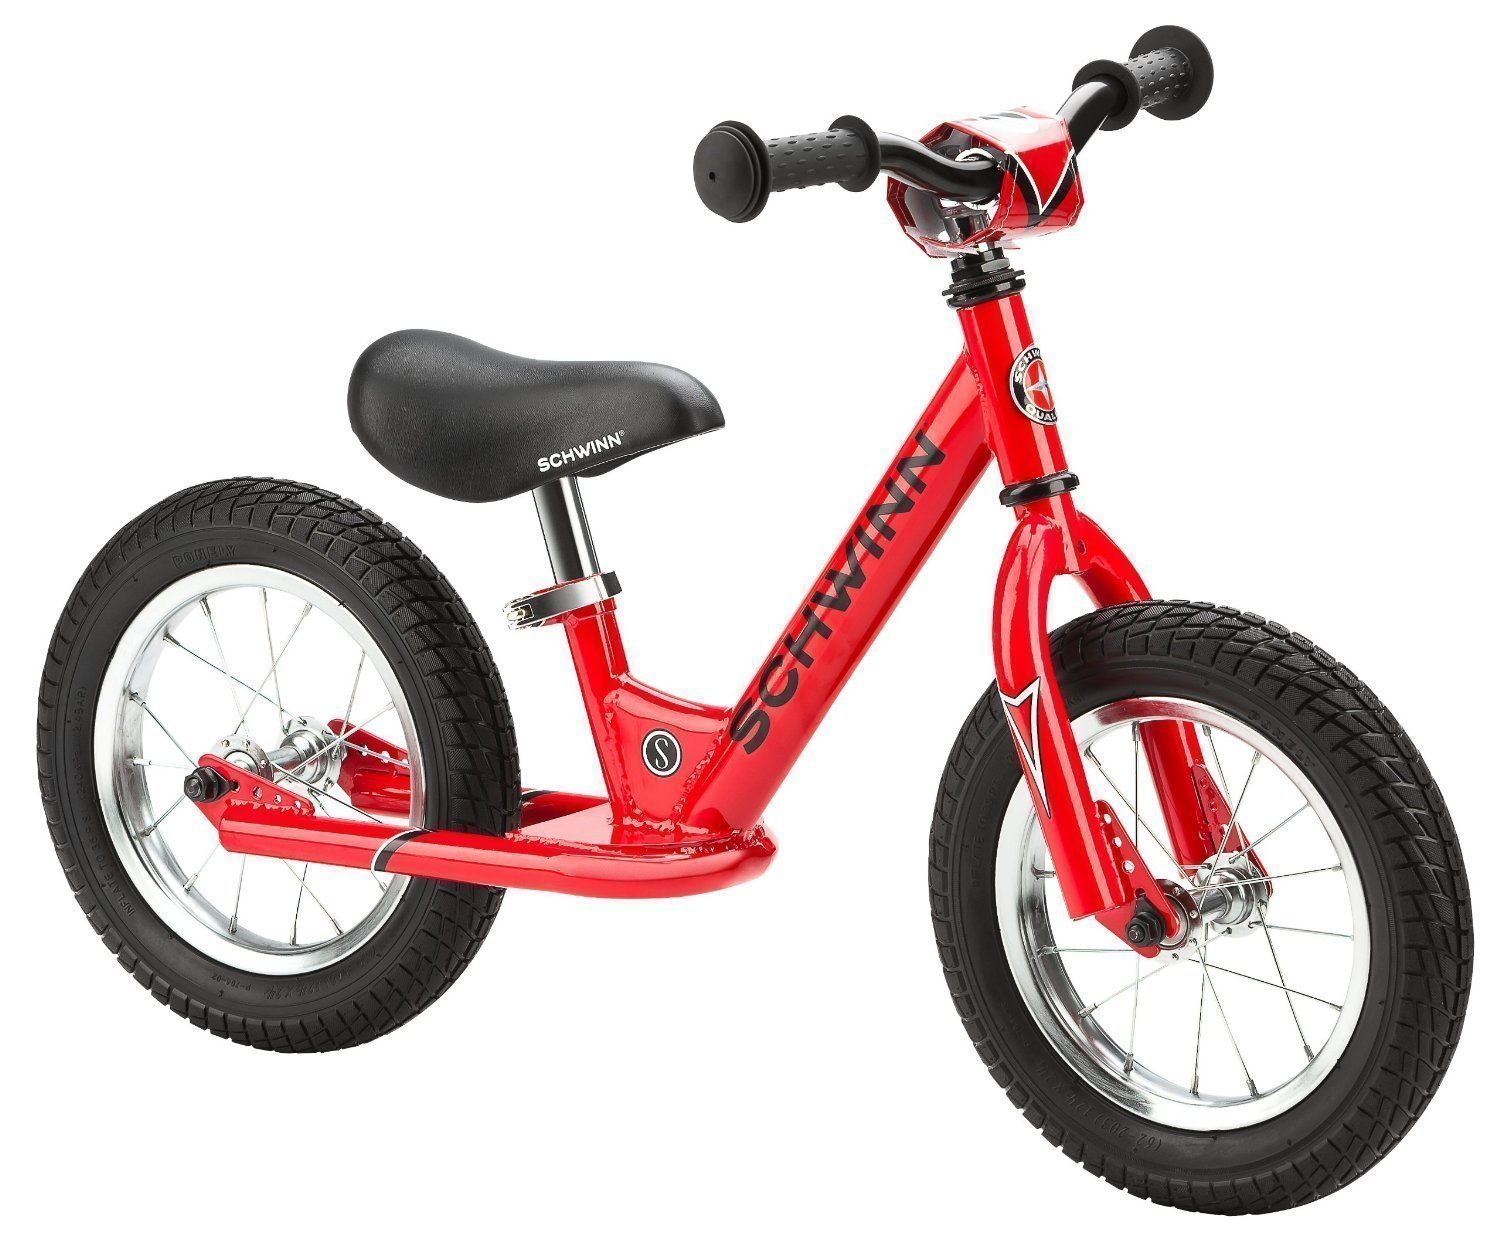 Schwinn Balance Bike 12 Inch Review